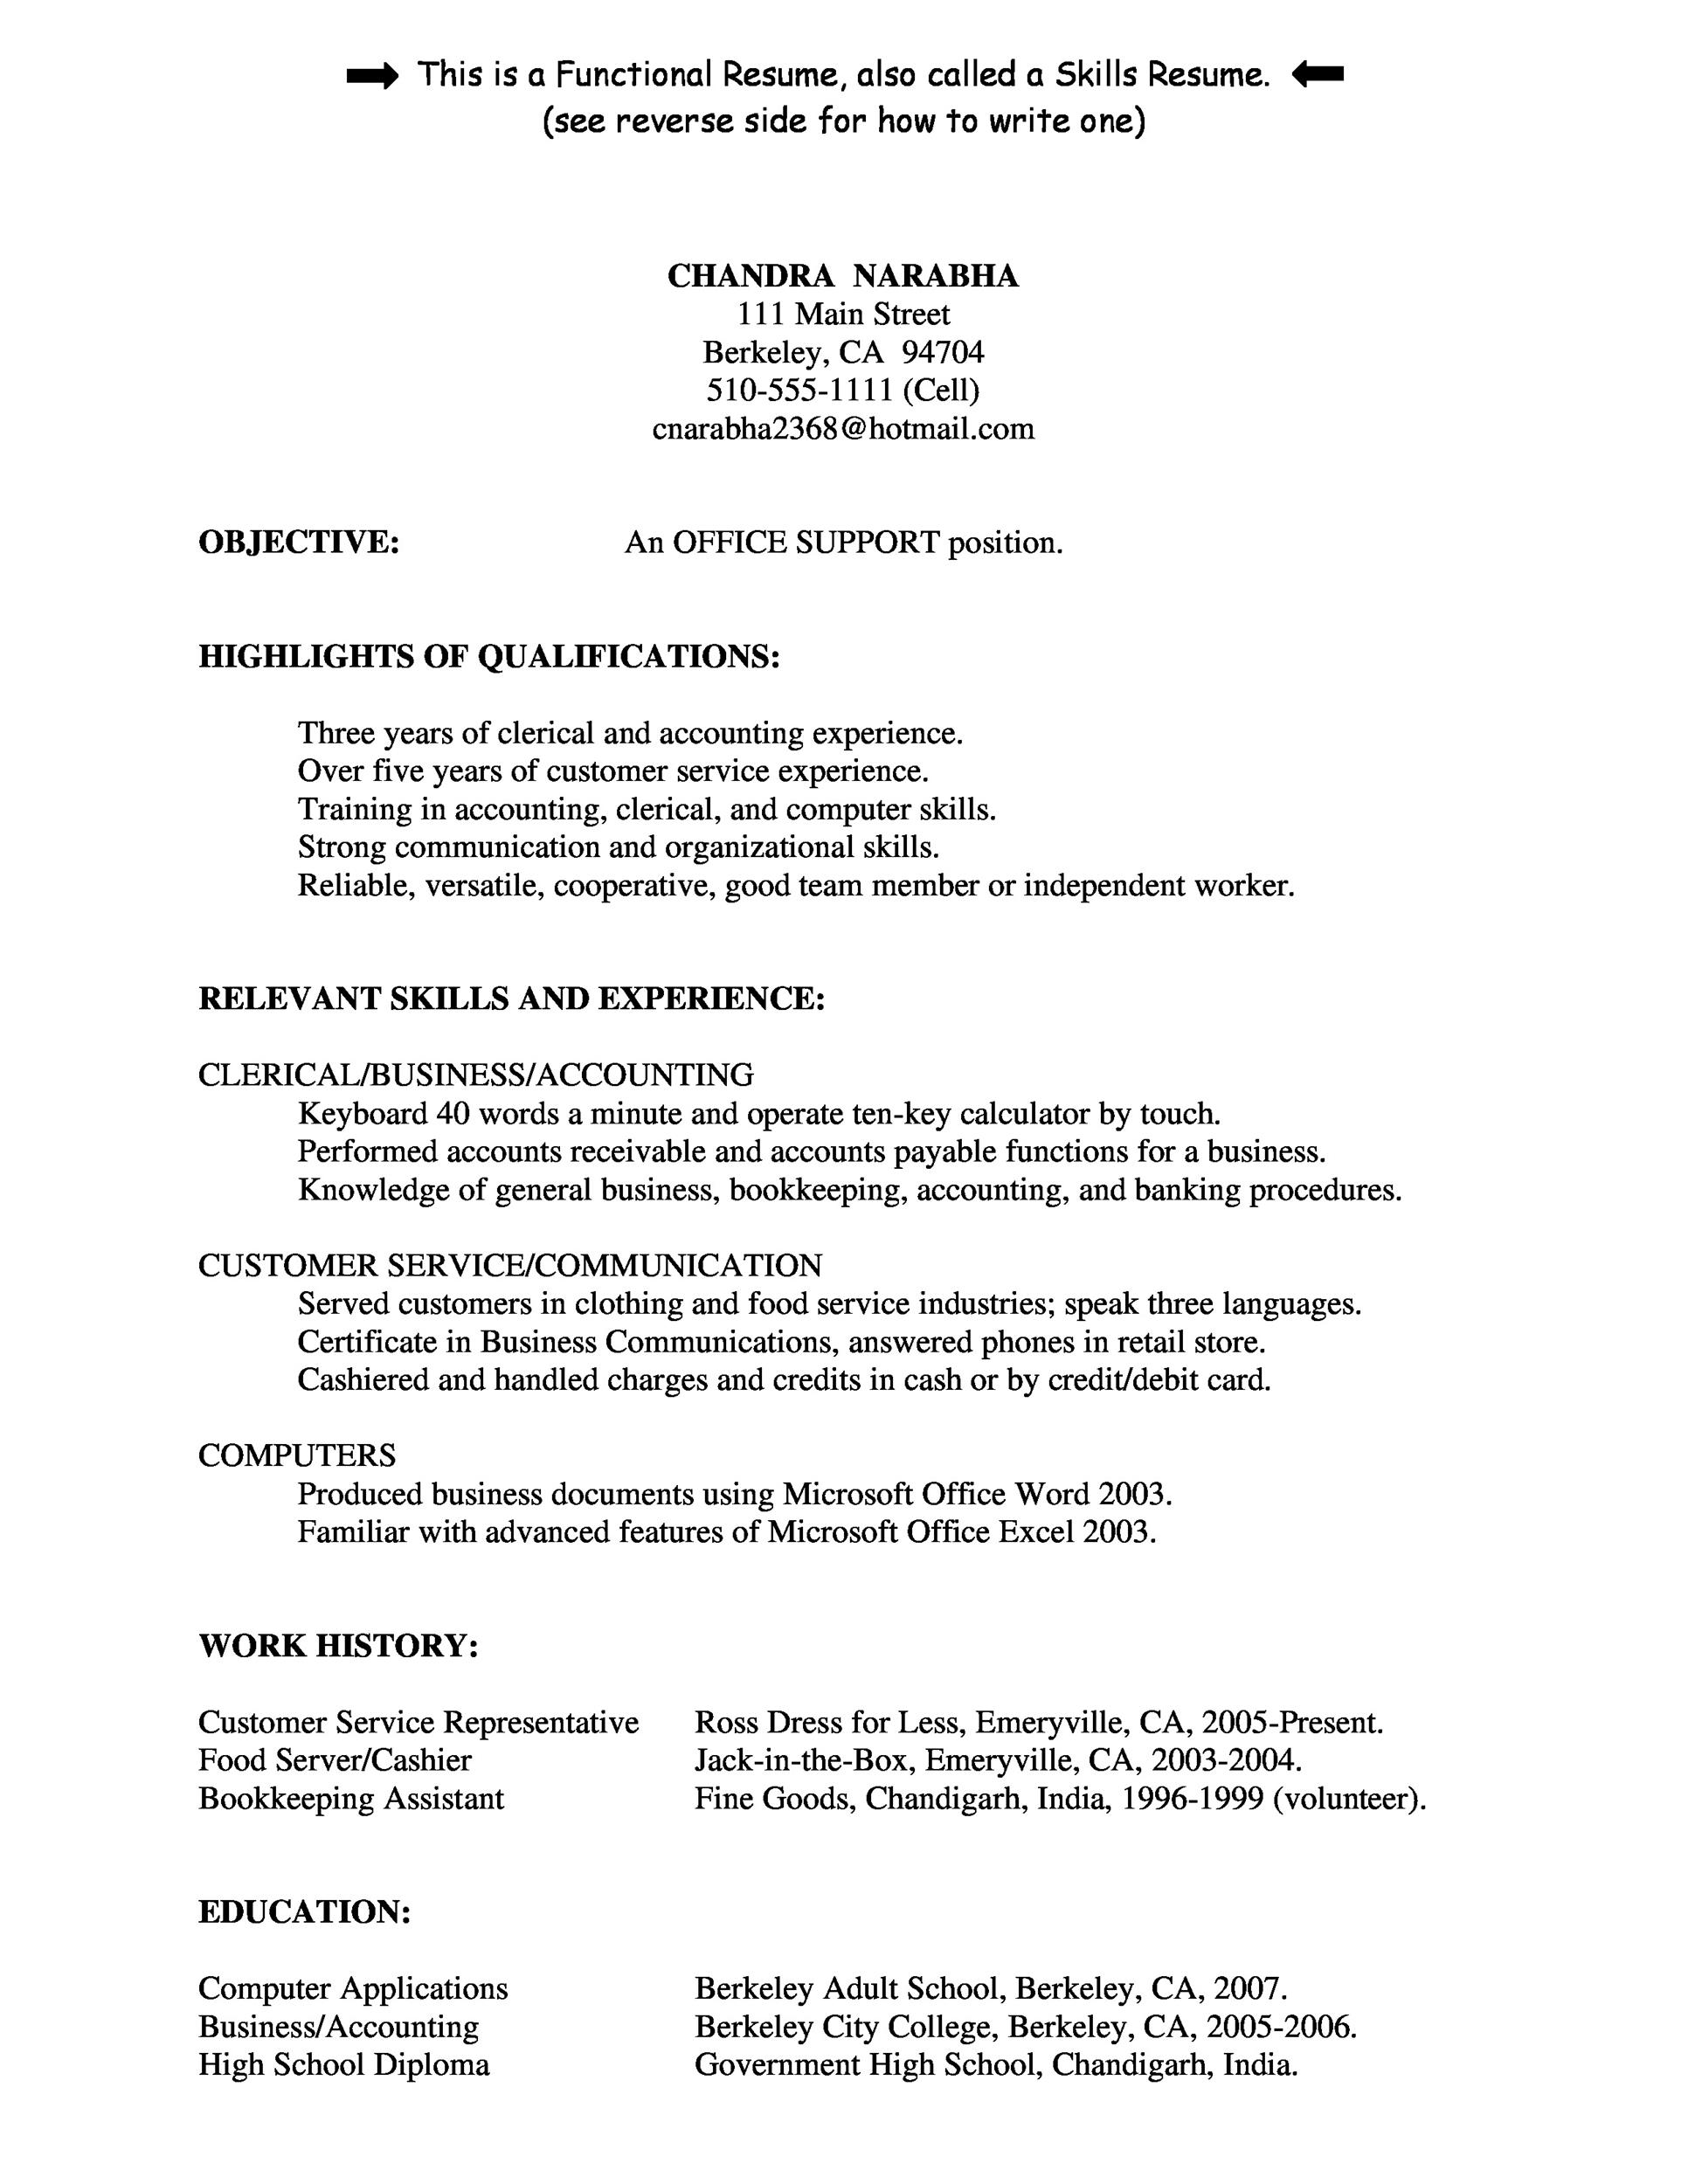 free customer service resume template 34 - Resume Highlights